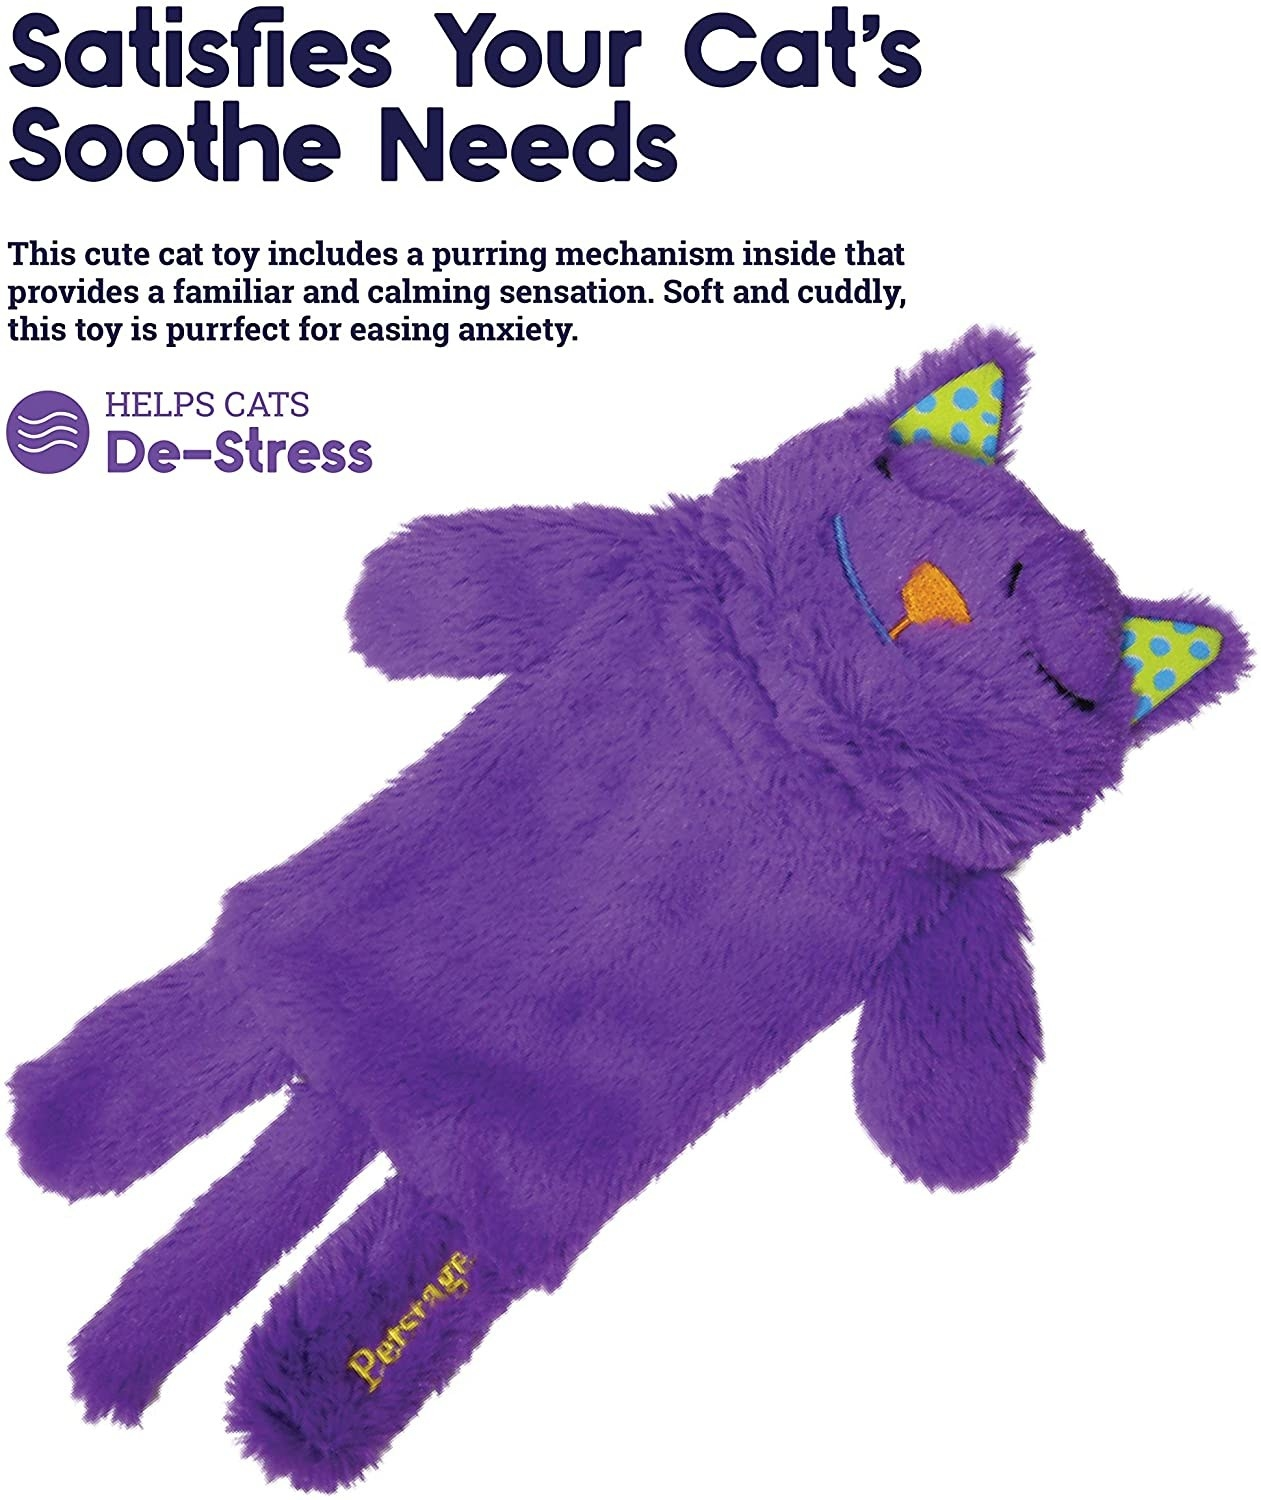 The purple furry cat-shaped toy